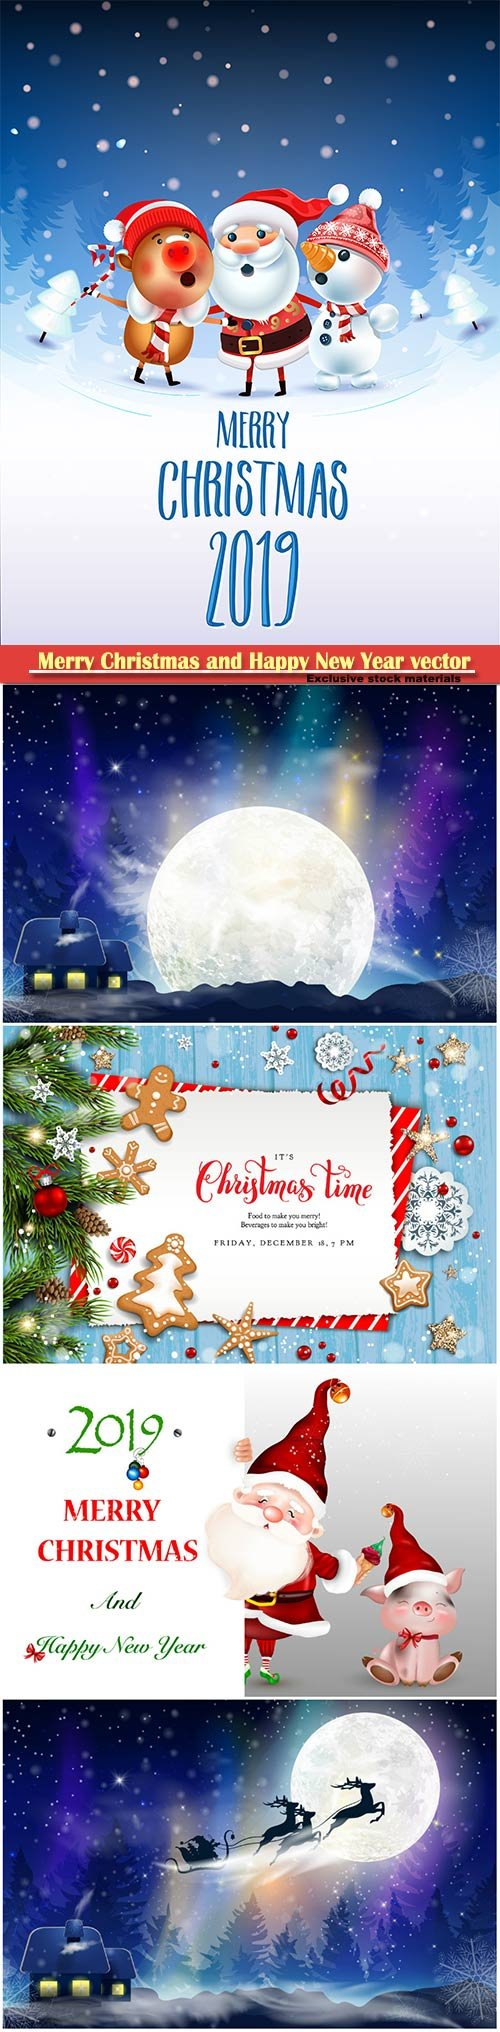 2019 Merry Christmas and Happy New Year vector design # 8